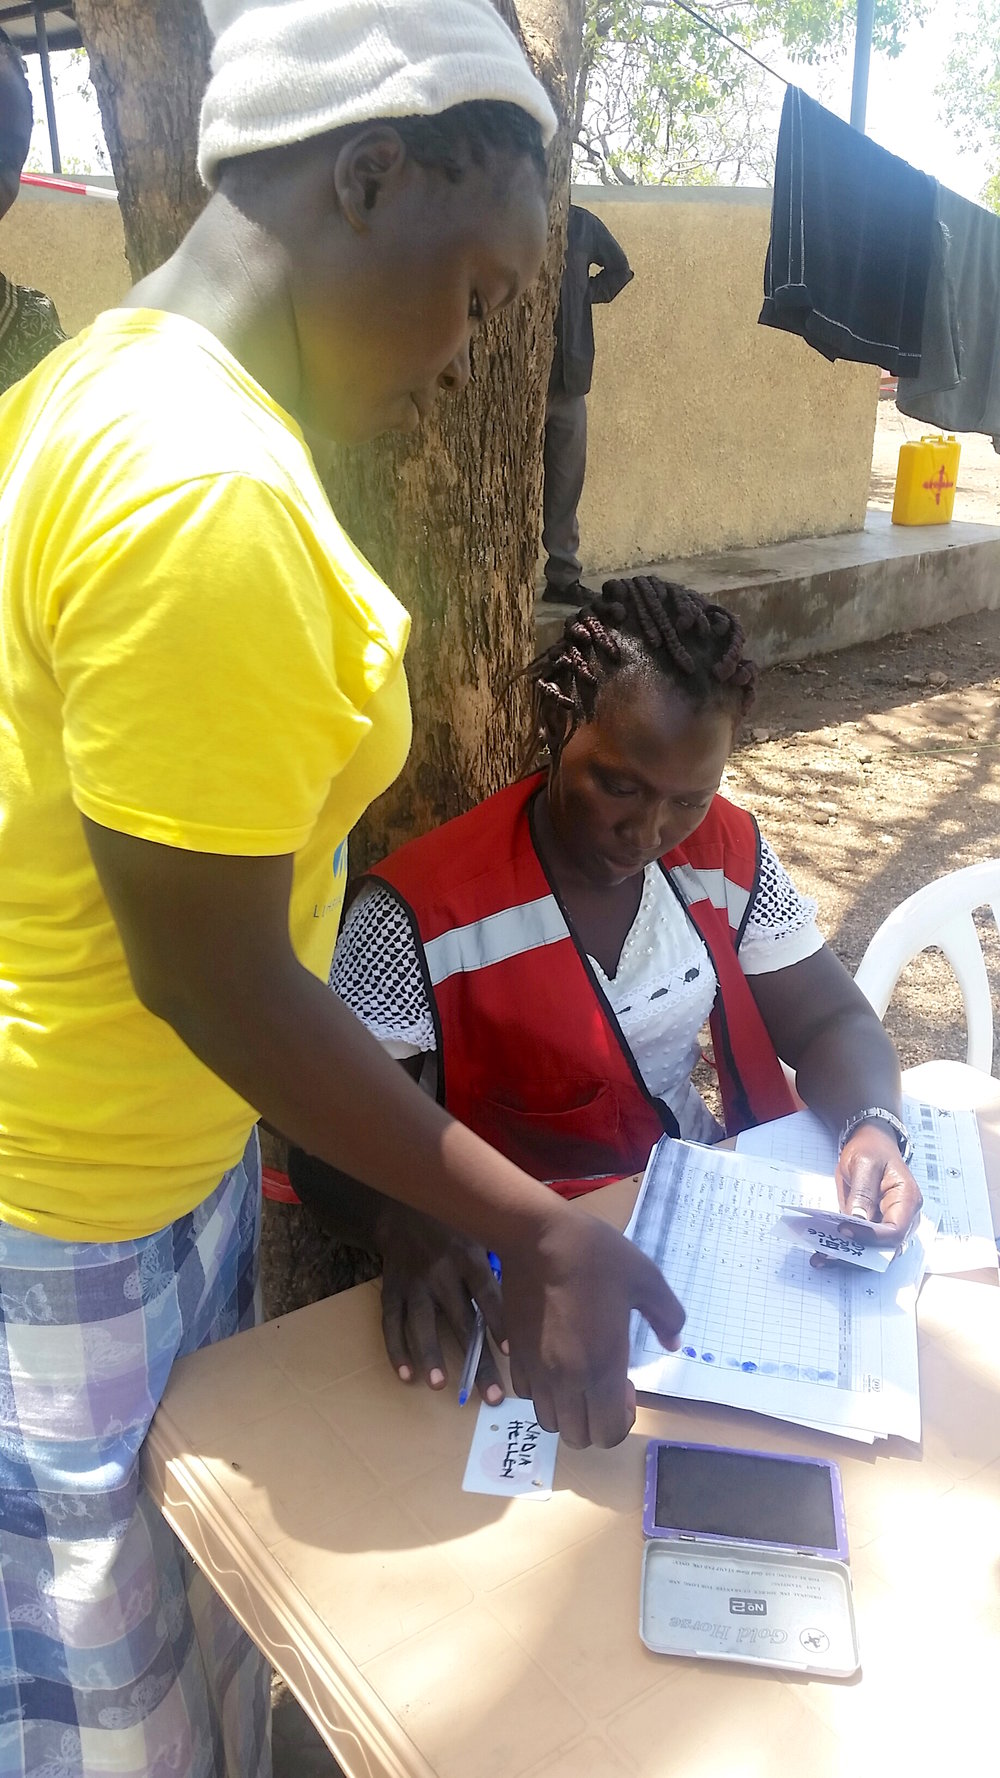 ChildVoice student Nadia registers as a South Sudanese refugee, having joined the program in March, 2016, before war broke out in South Sudan. Now the majority of her community from the city of Yei has fled to the camps in Uganda for safety.